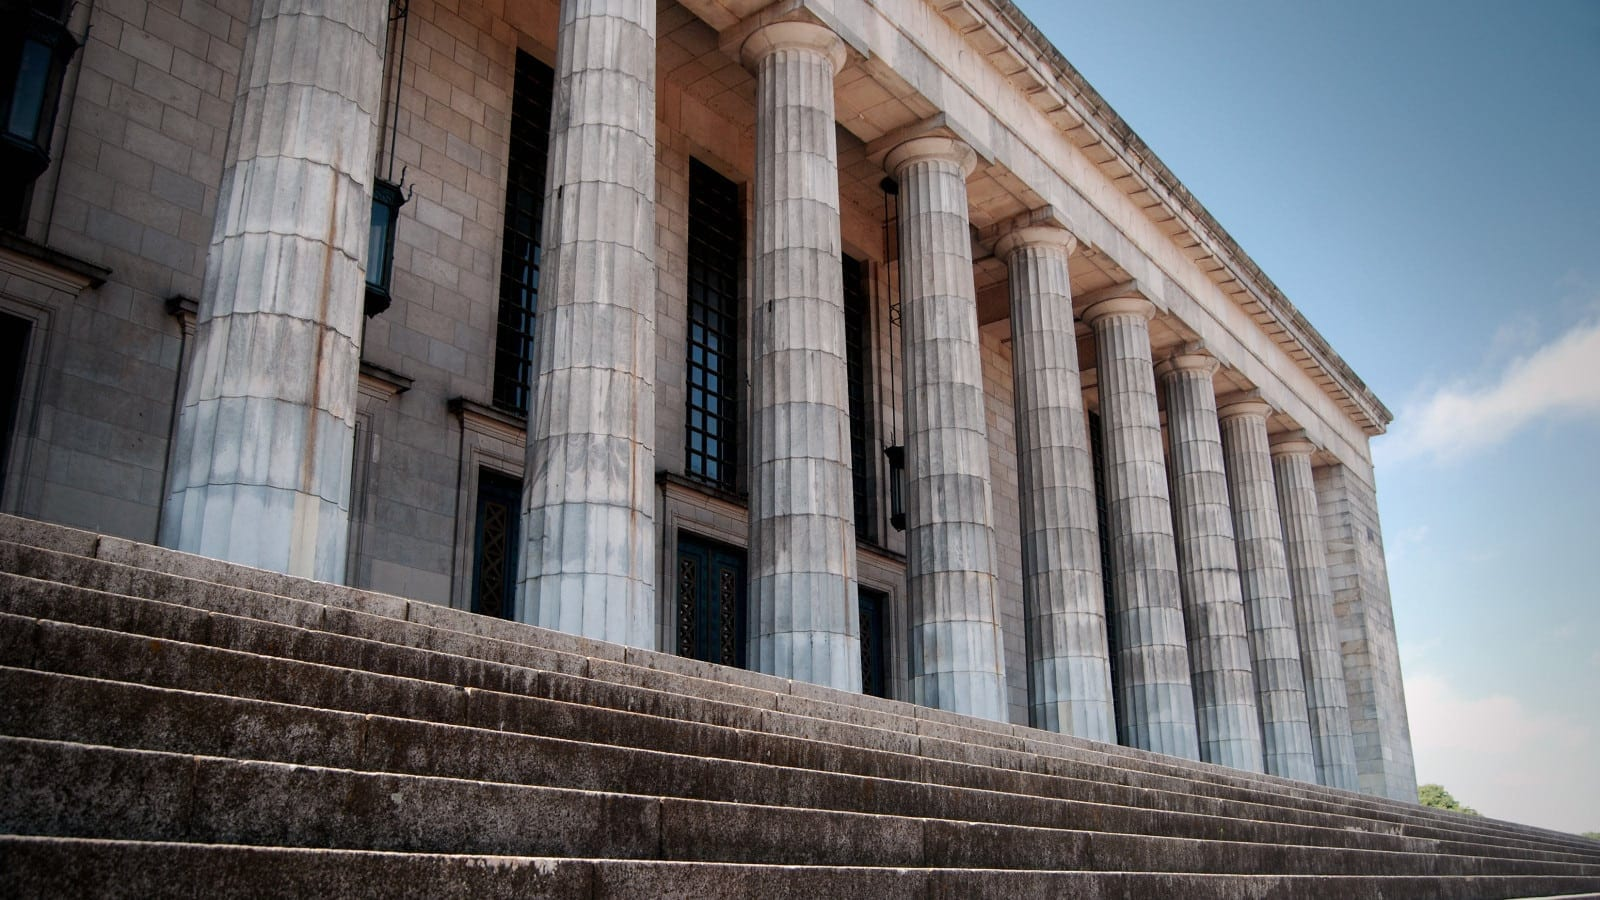 Exterior Of Large Courthouse Stock Photo